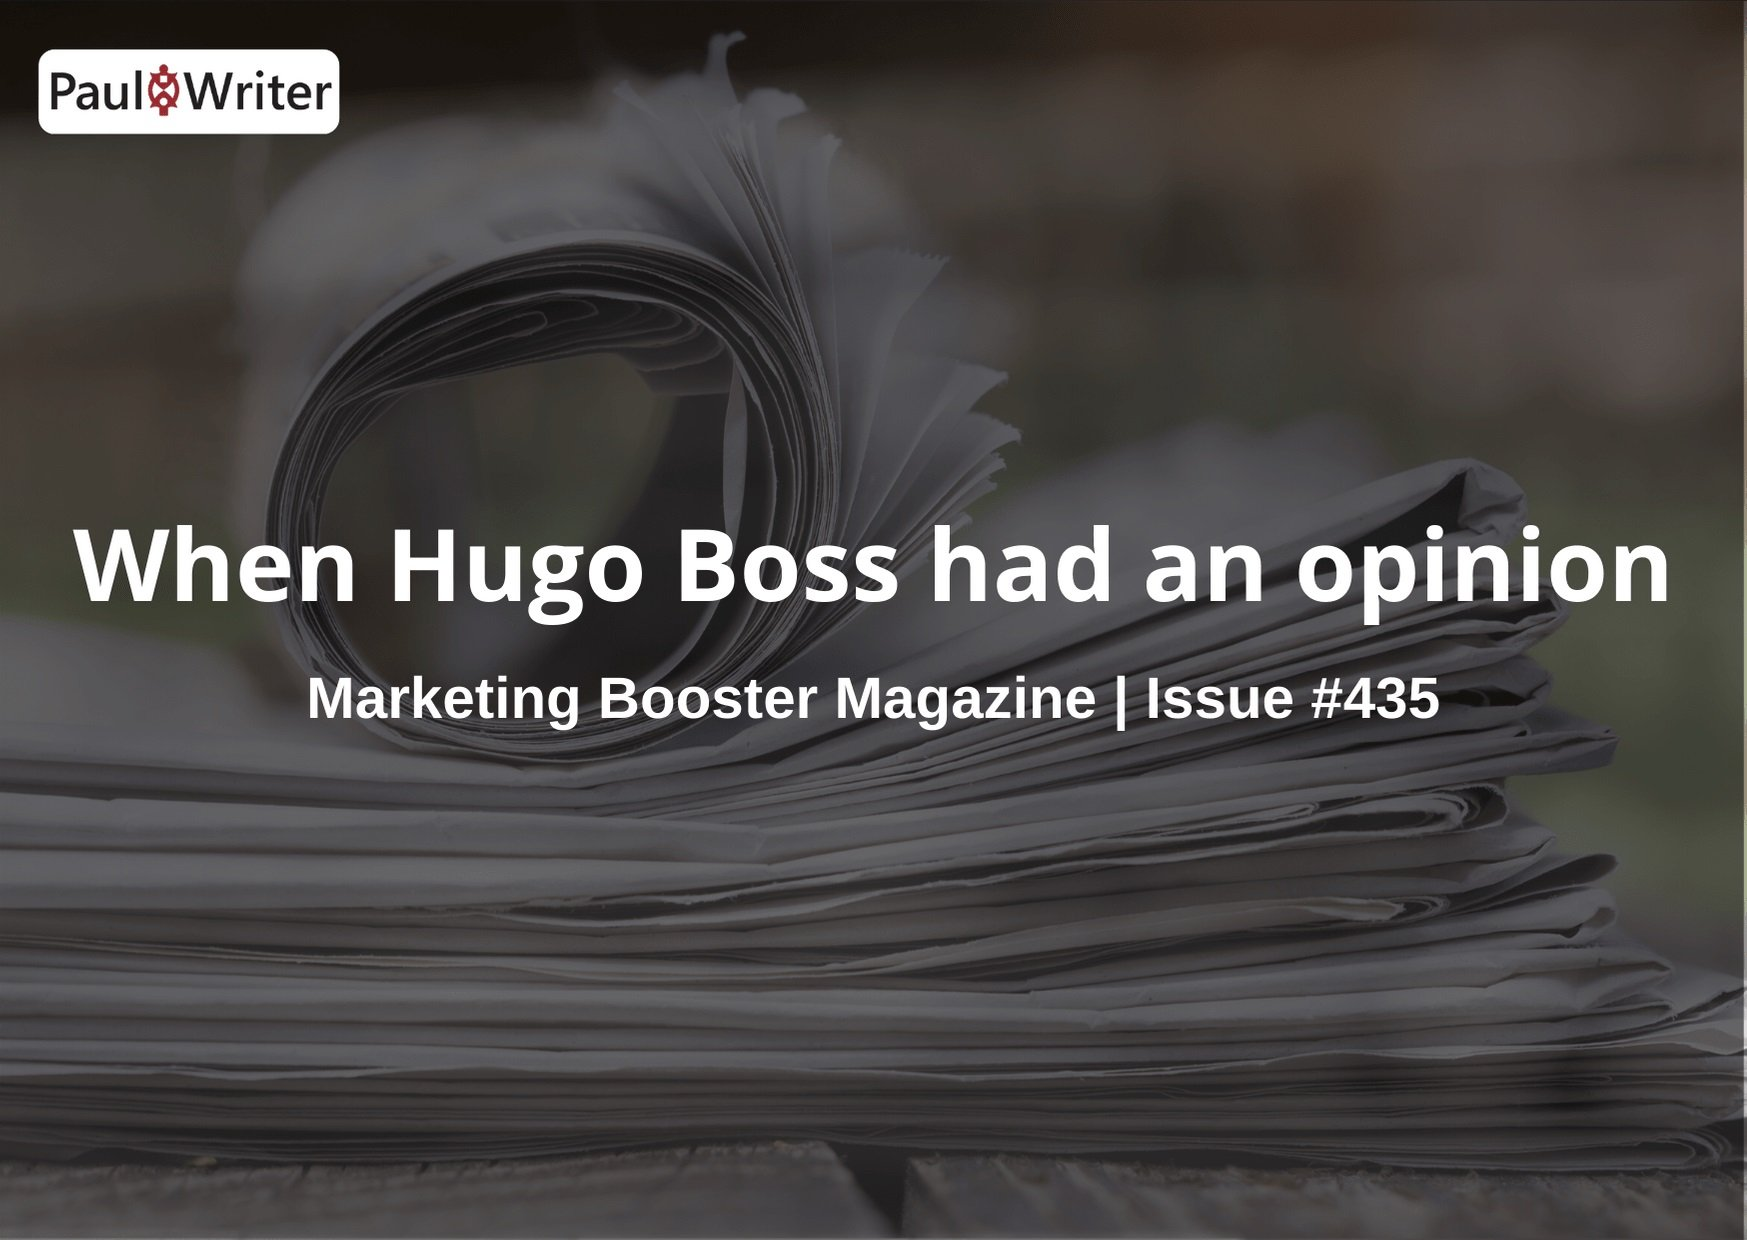 When Hugo Boss had an opinion